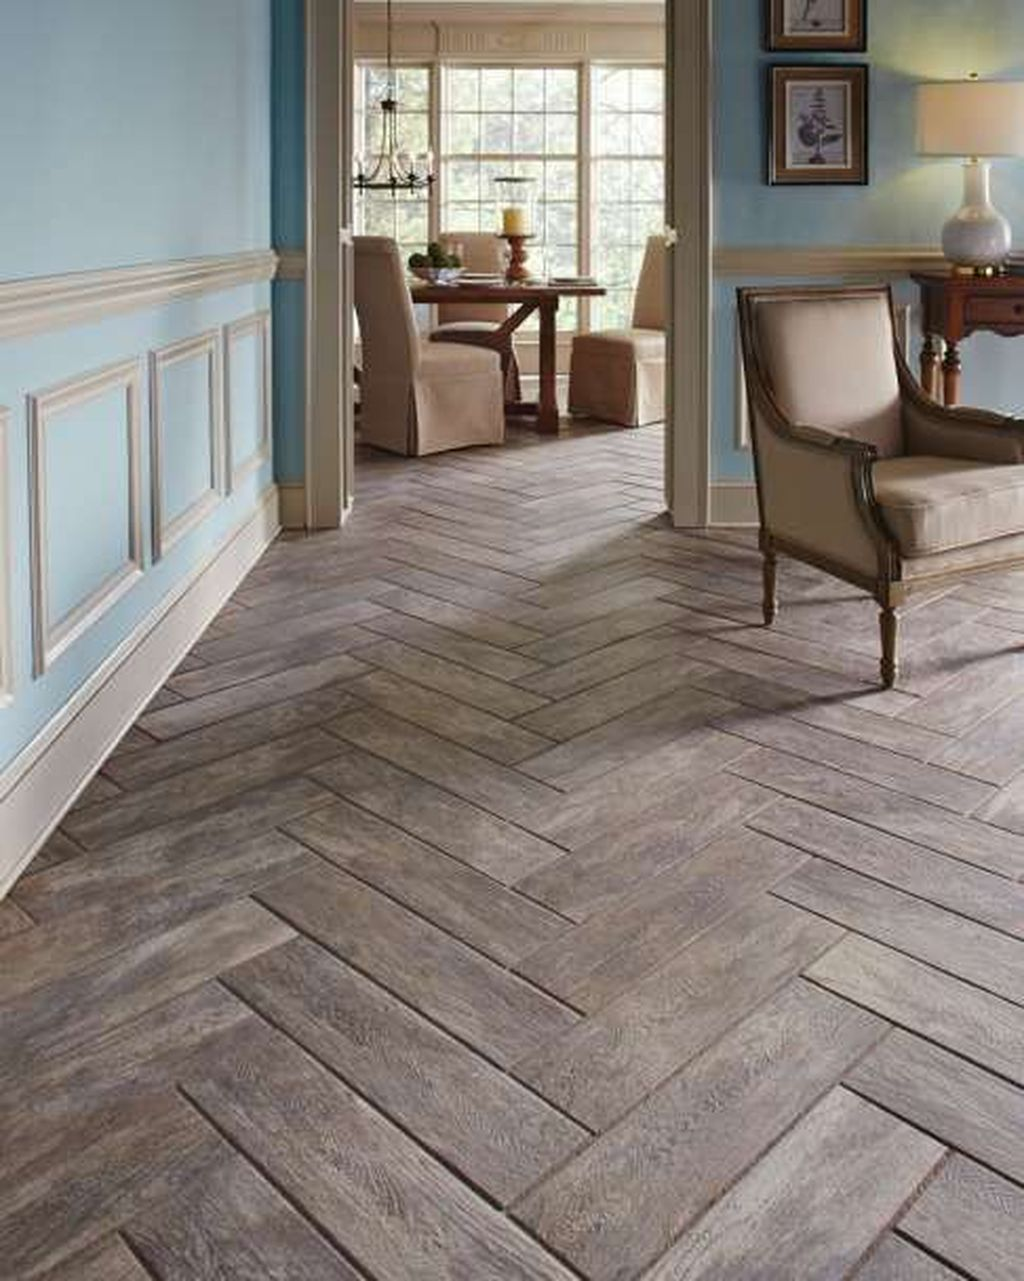 Awesome Wooden Tiles Flooring Ideas 25